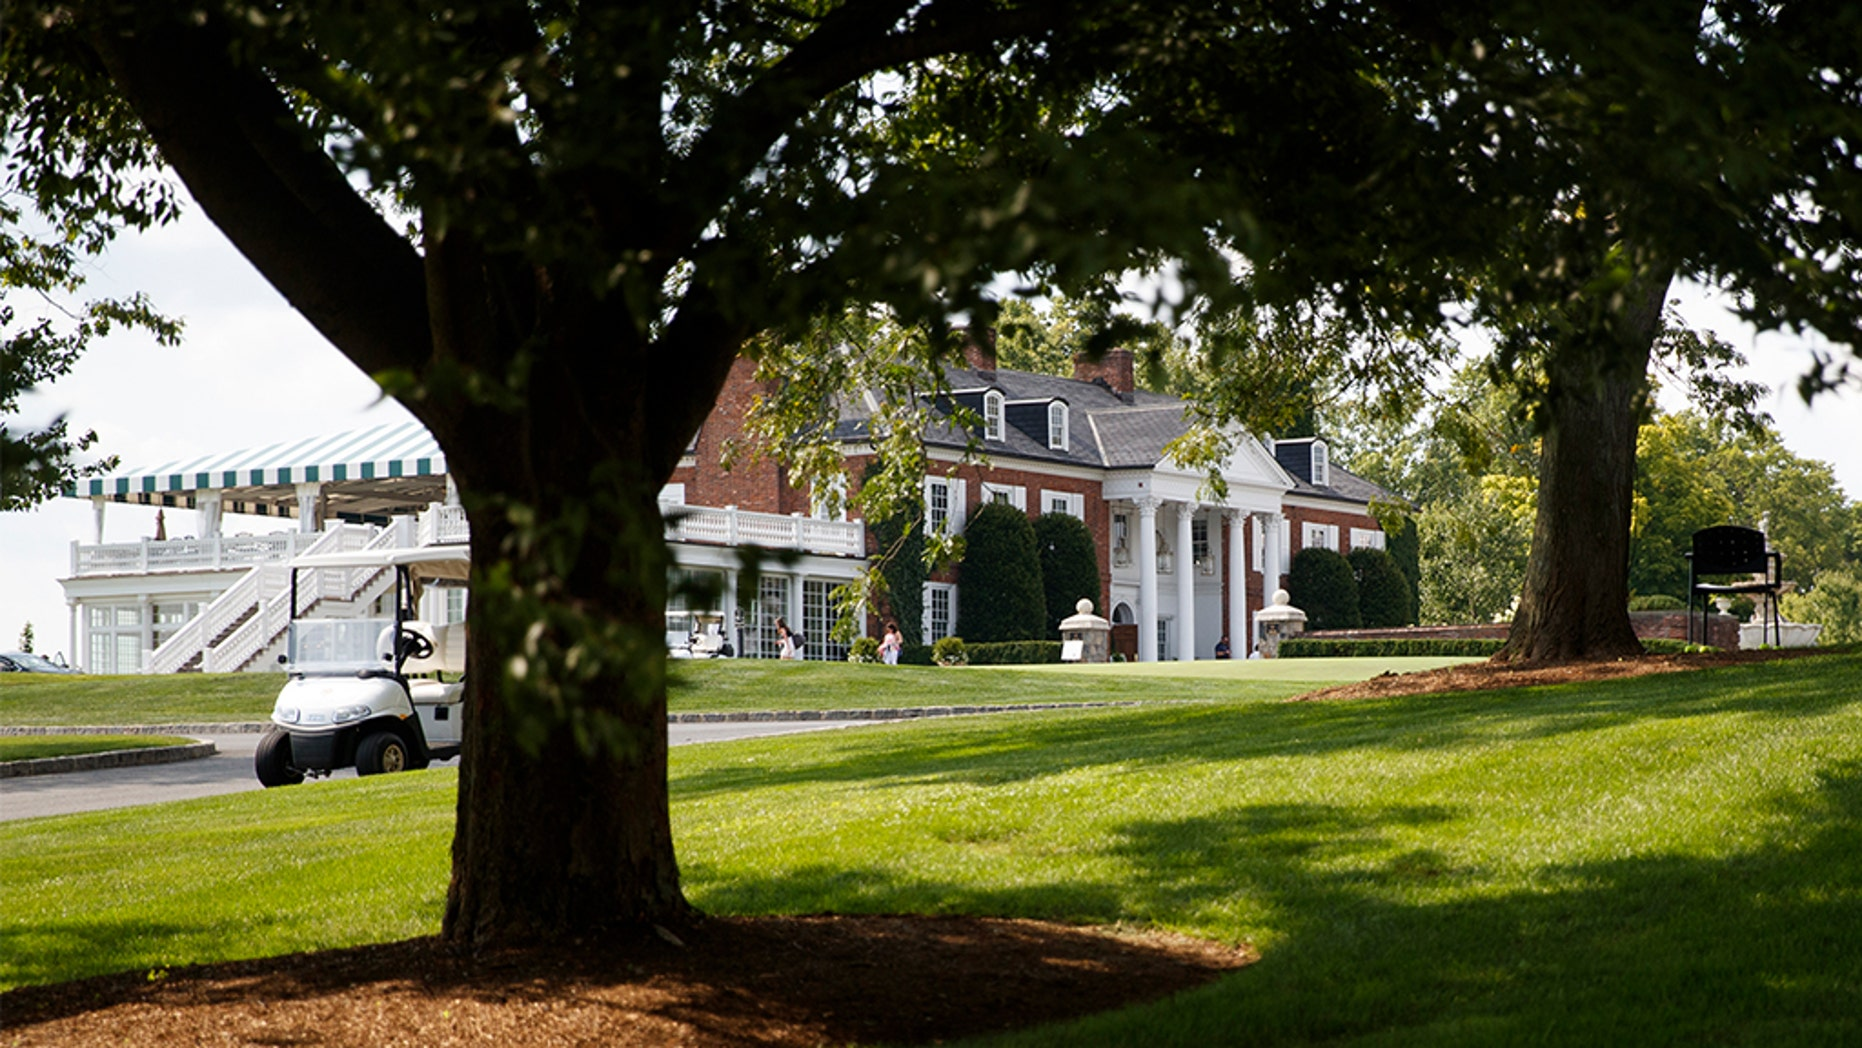 The Times article spotlighted Victorina Morales, an undocumented immigrant from Guatemala, who has worked as a housekeeper at the Trump National Golf Club in Bedminster, New Jersey, since 2013. (AP Photo/Carolyn Kaster)